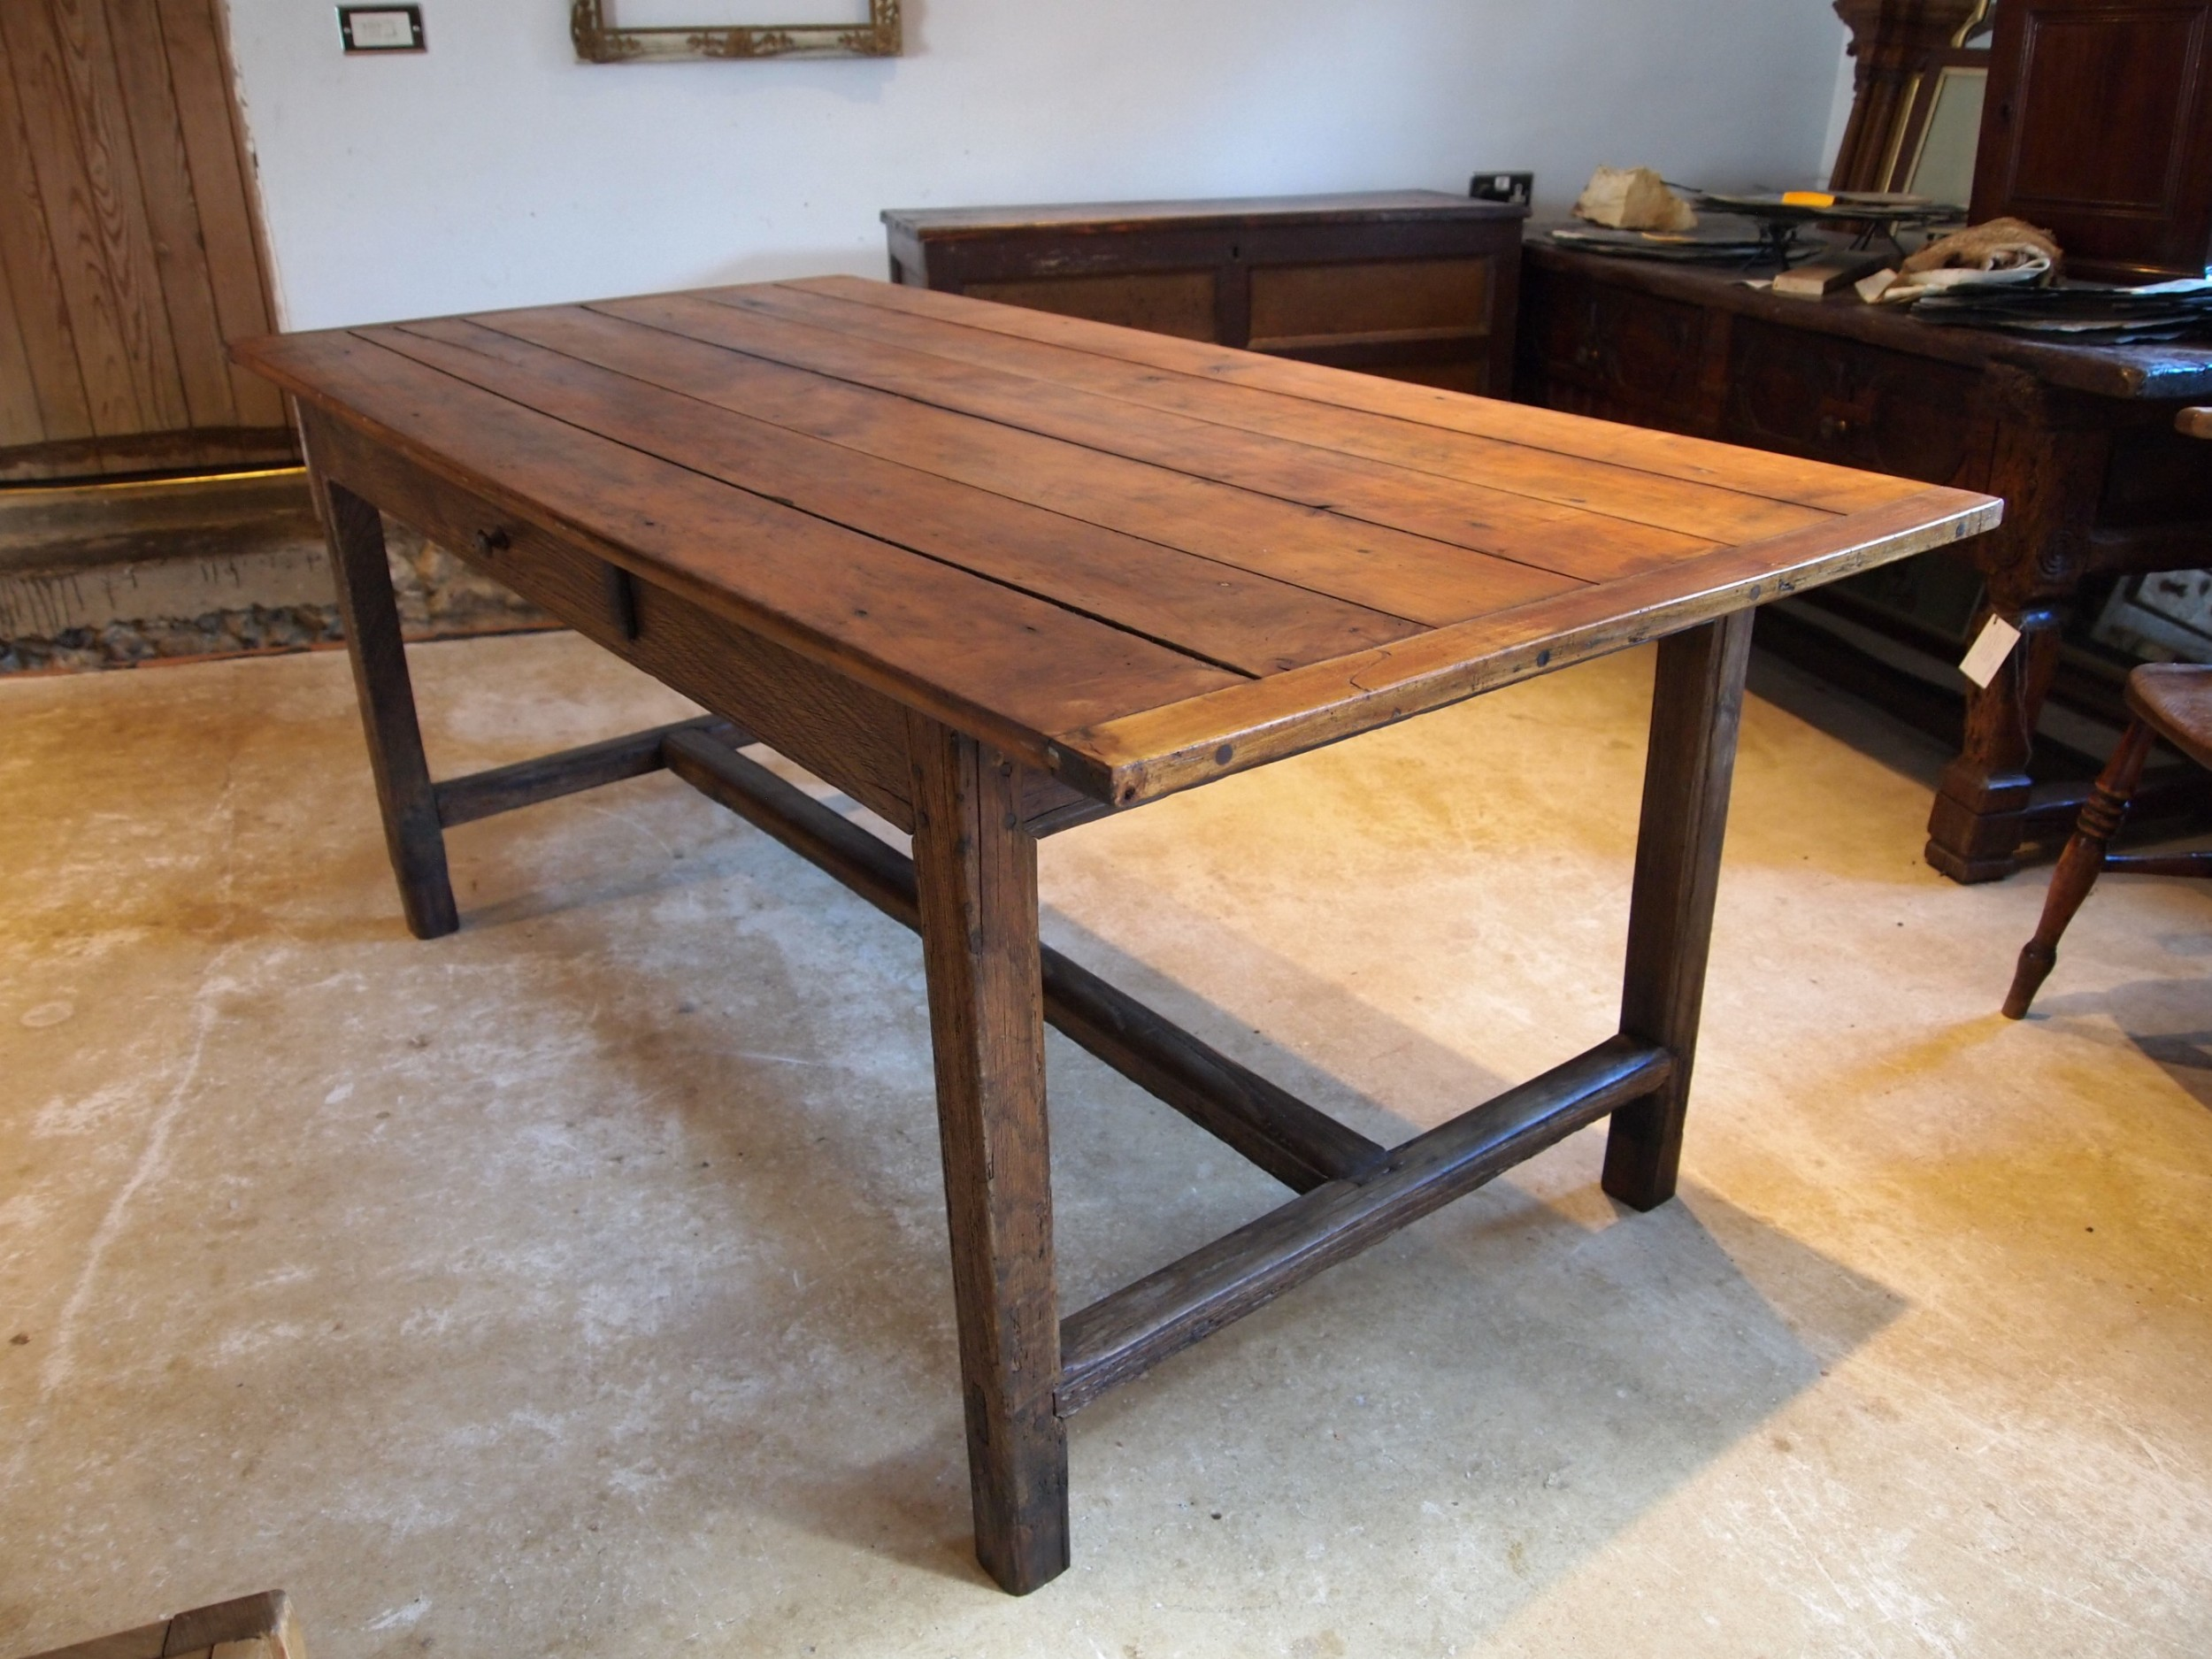 table refectory dining farmhouse french cherry and chestnut c1800